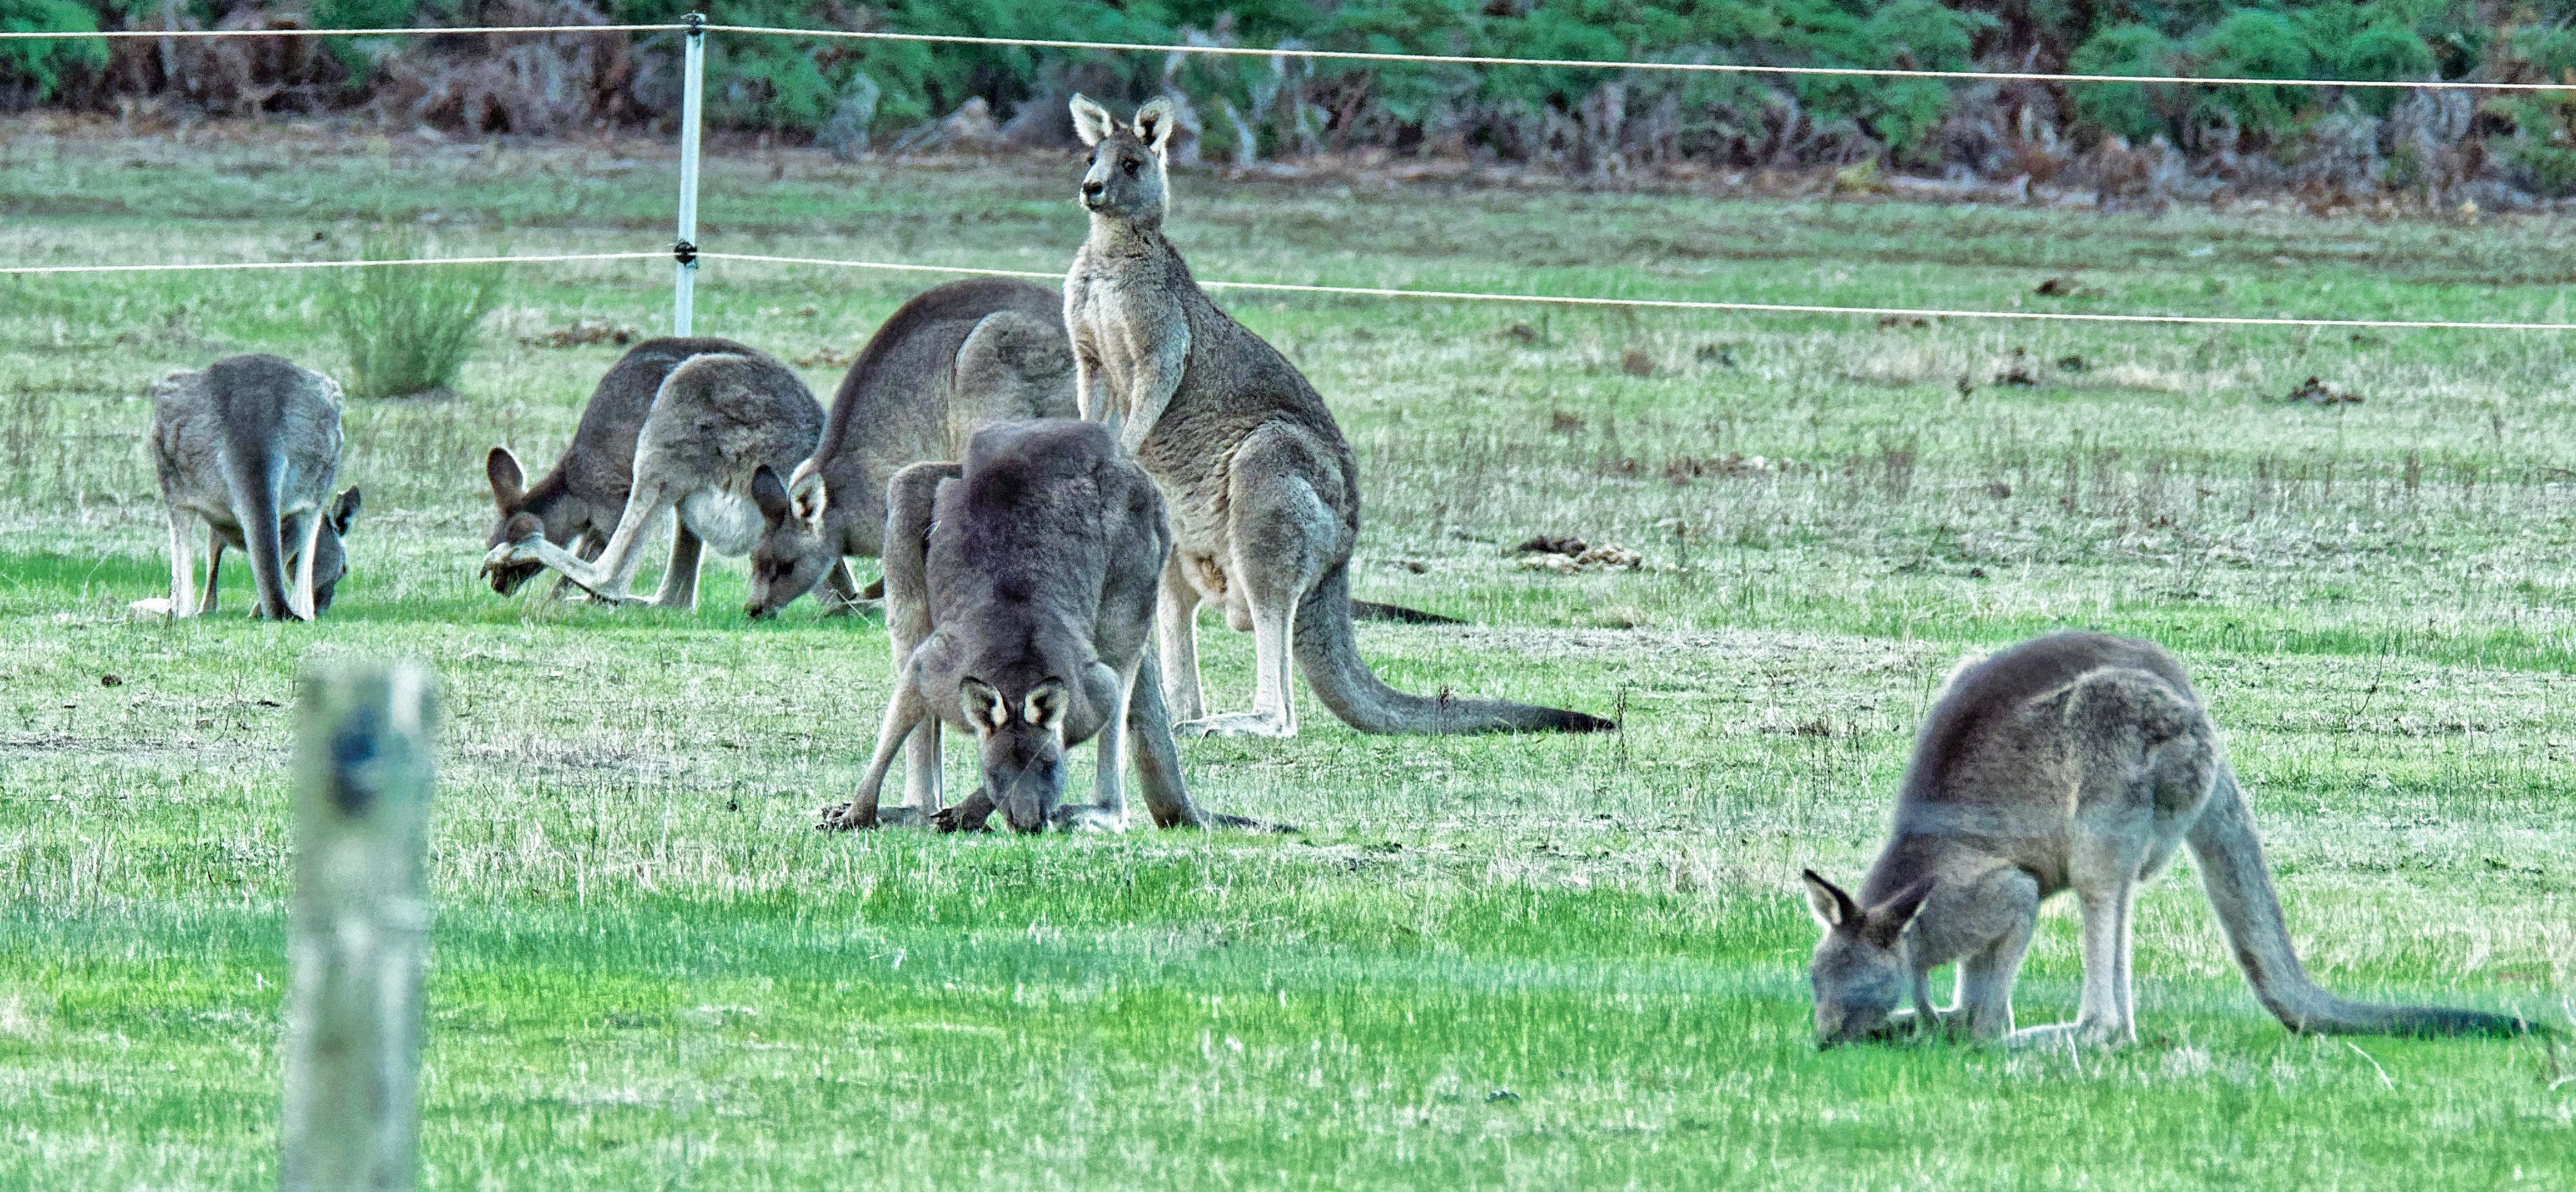 This should be Kangaroos-4-detail.jpeg.  Is it missing?